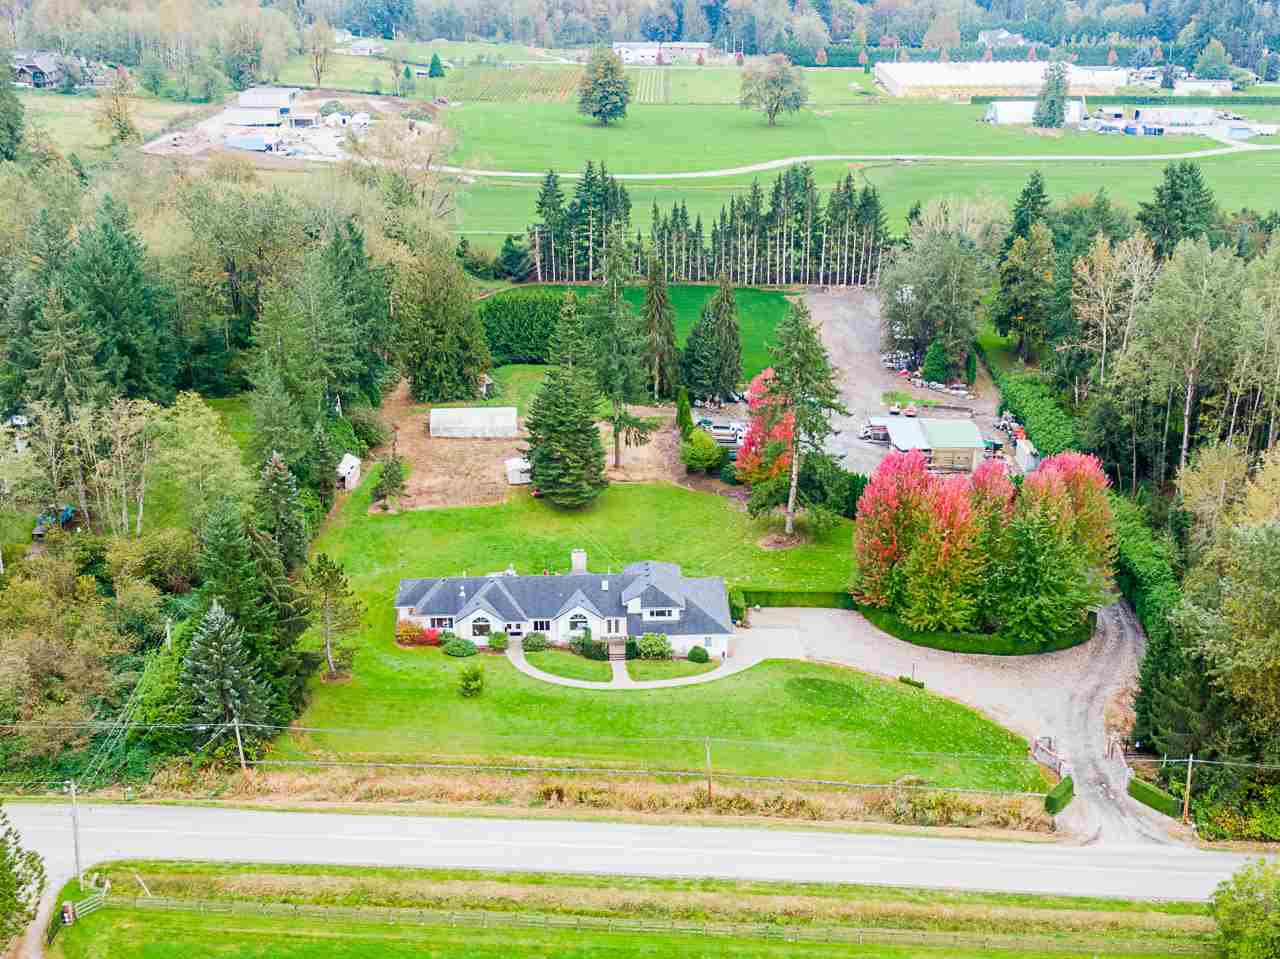 Main Photo: 24114 80 Avenue in Langley: County Line Glen Valley House for sale : MLS®# R2516295